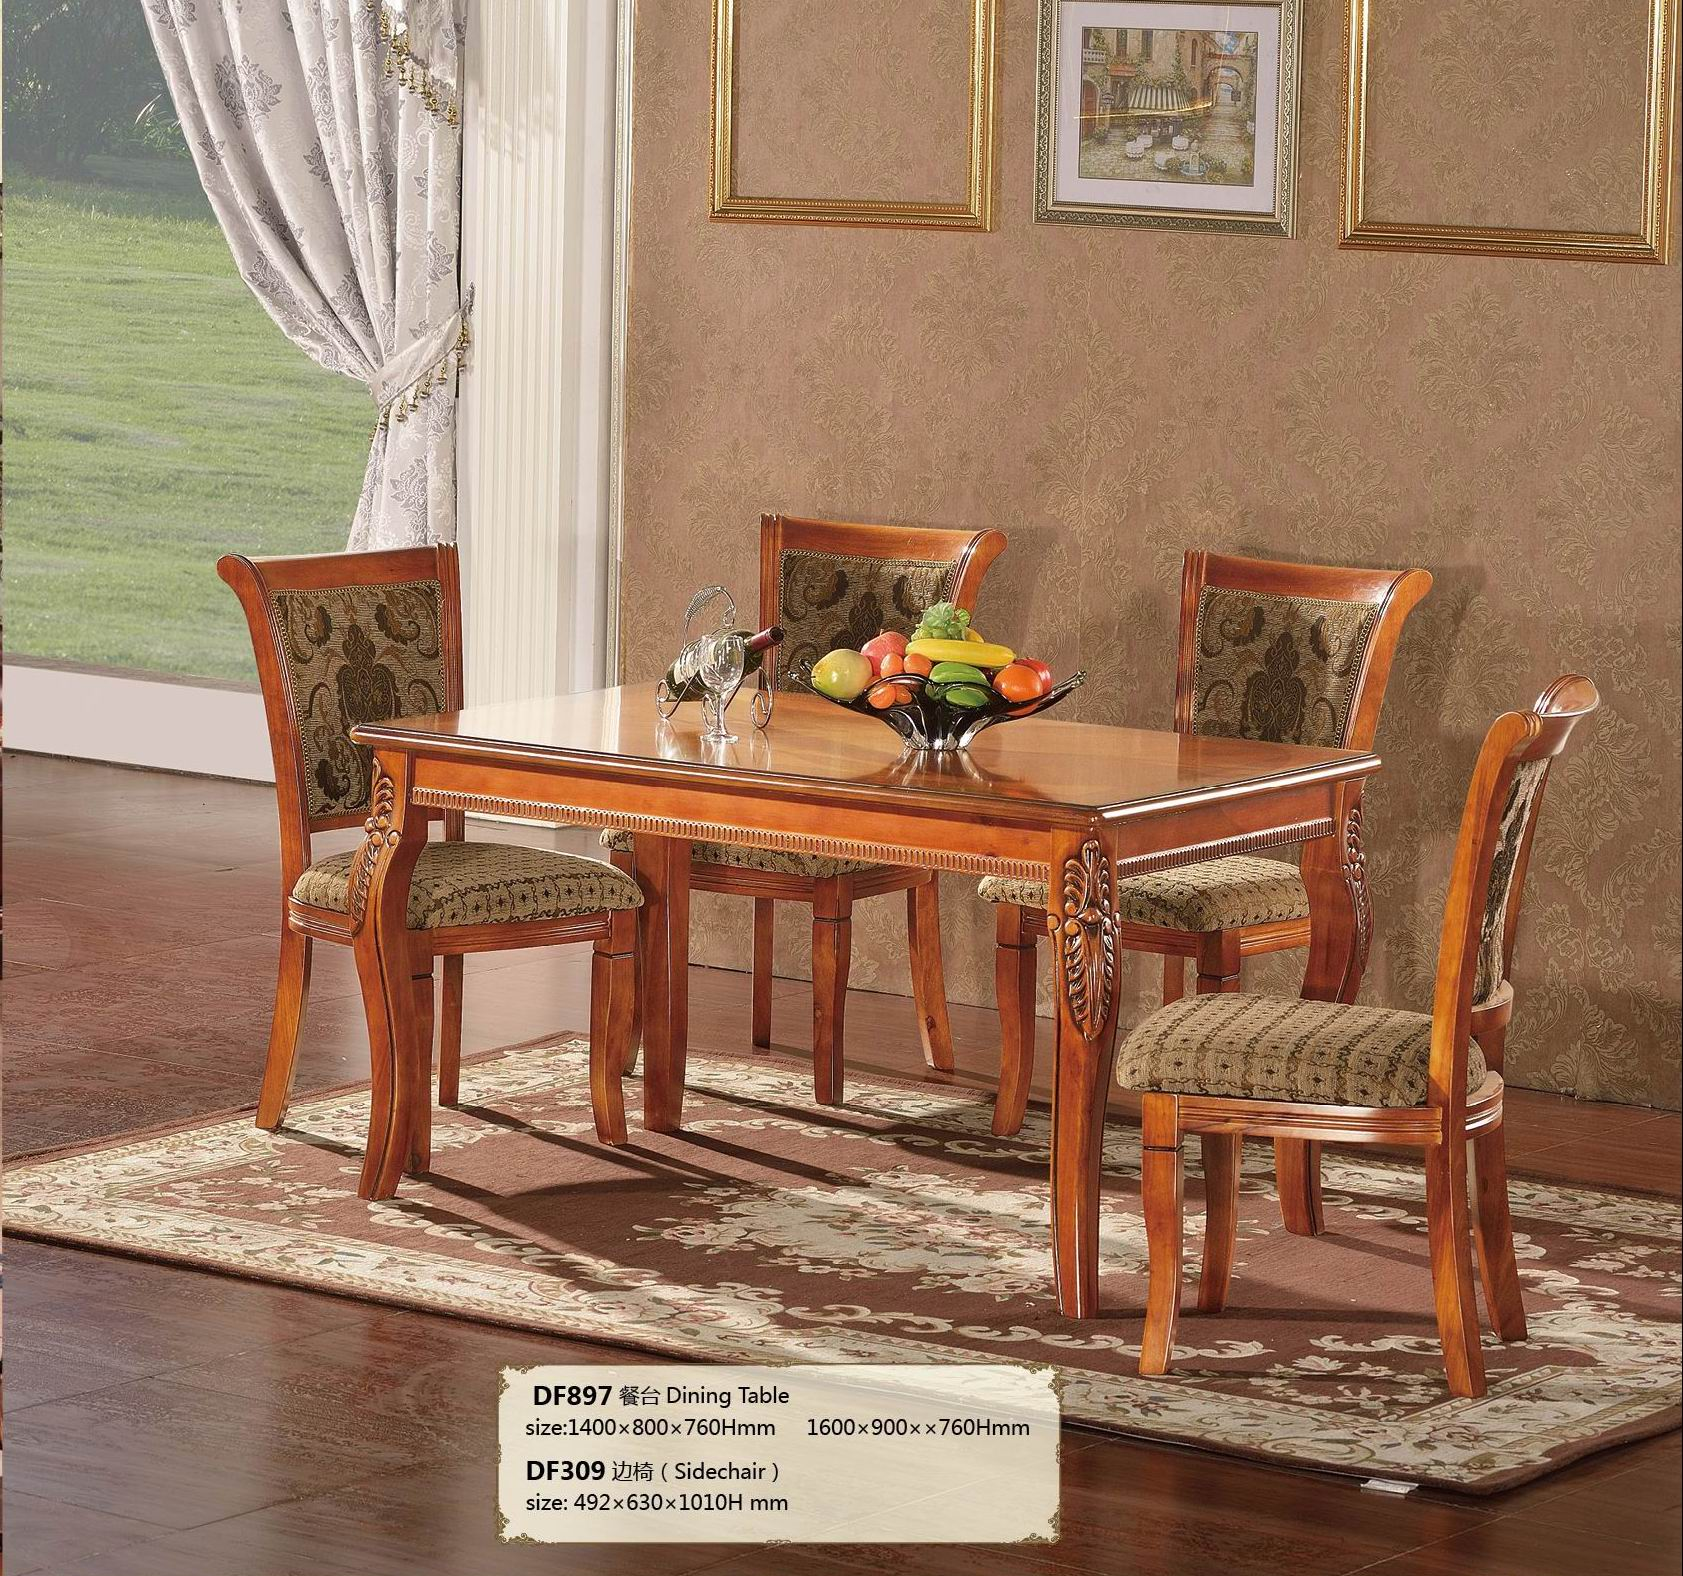 Fench style real wood making desk for eating dining room use furniture.jpg